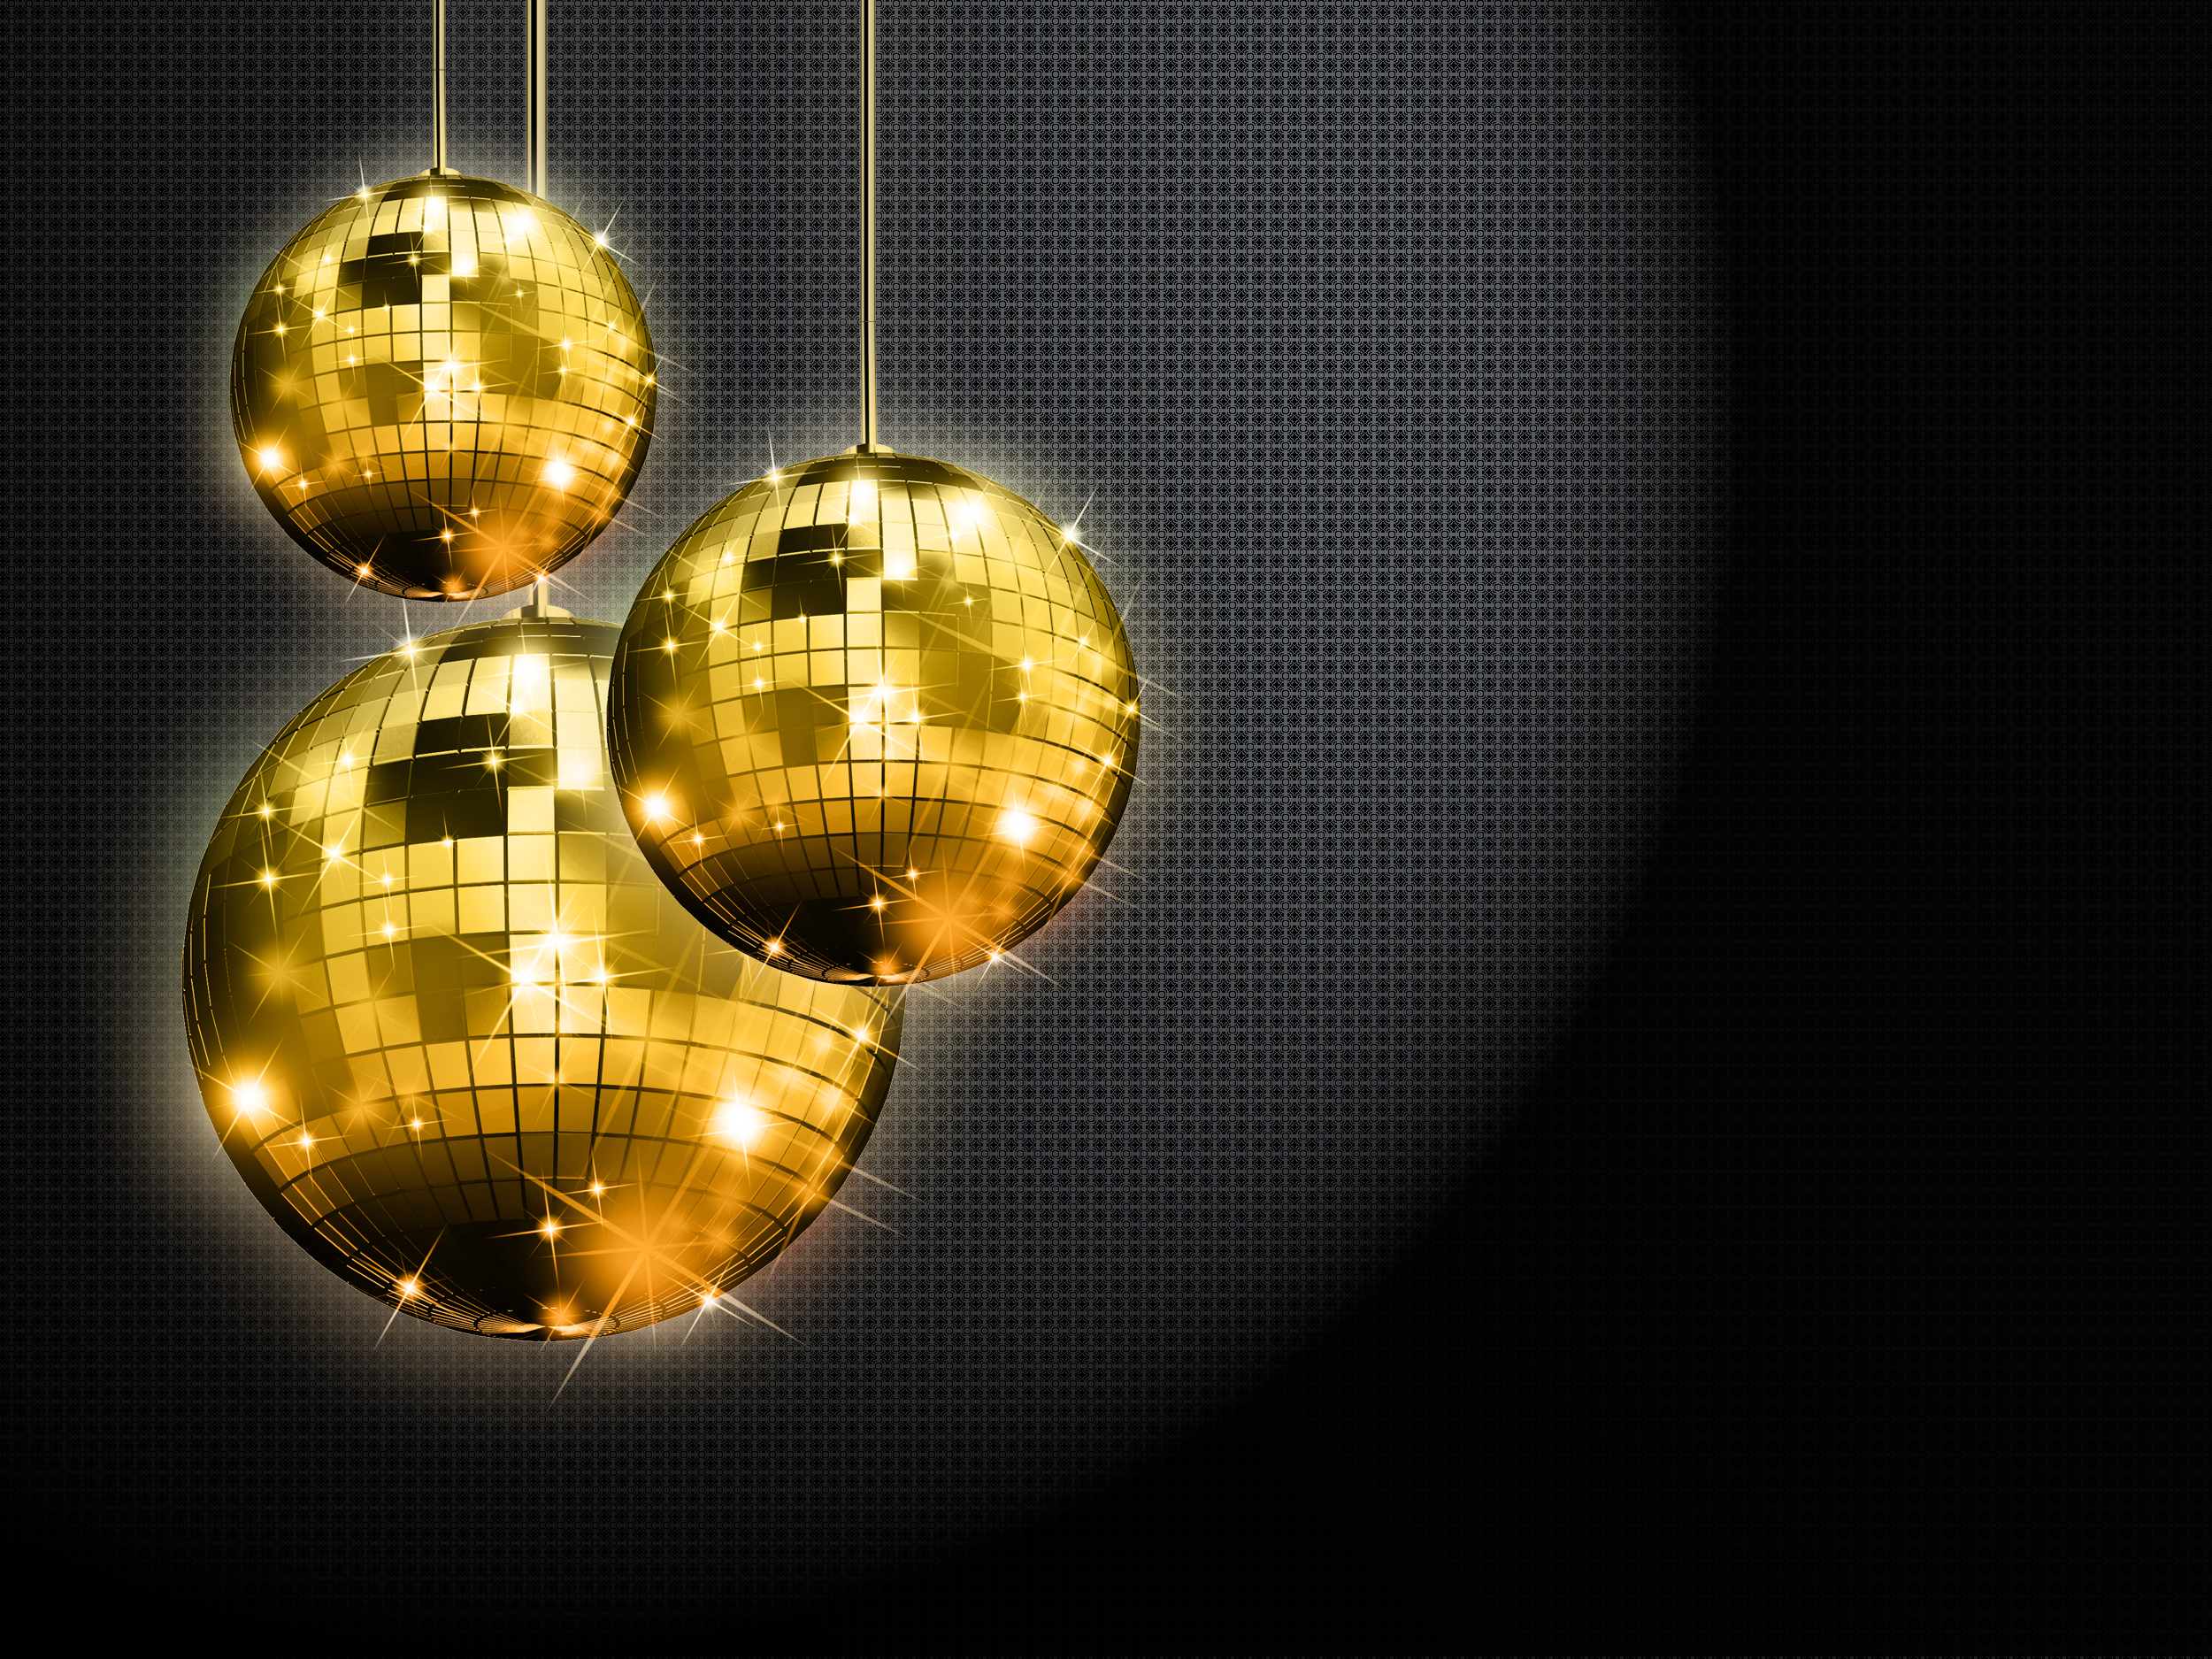 Disco Backgrounds - Free Downloads and Add-ons for Photoshop